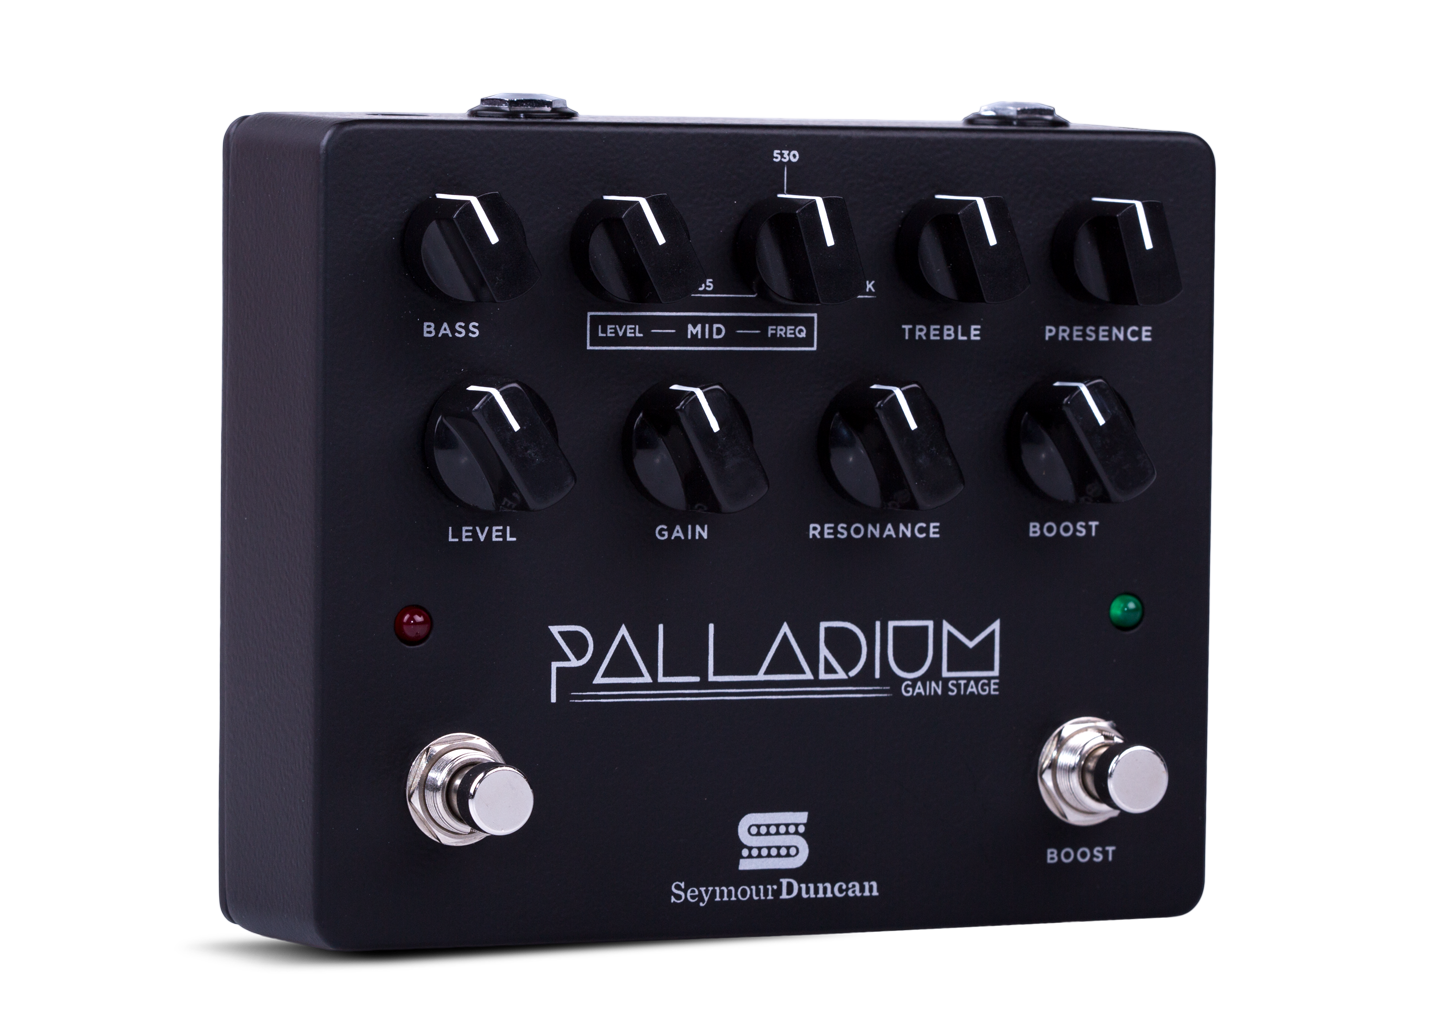 Https Products 000 Caq 2018 02 13t111556 05 Mooer Micro Preamp 002 Uk Gold 900 Based On Marshall Jcm900 Palladium Blk Gain Stage Pedalv1483629414